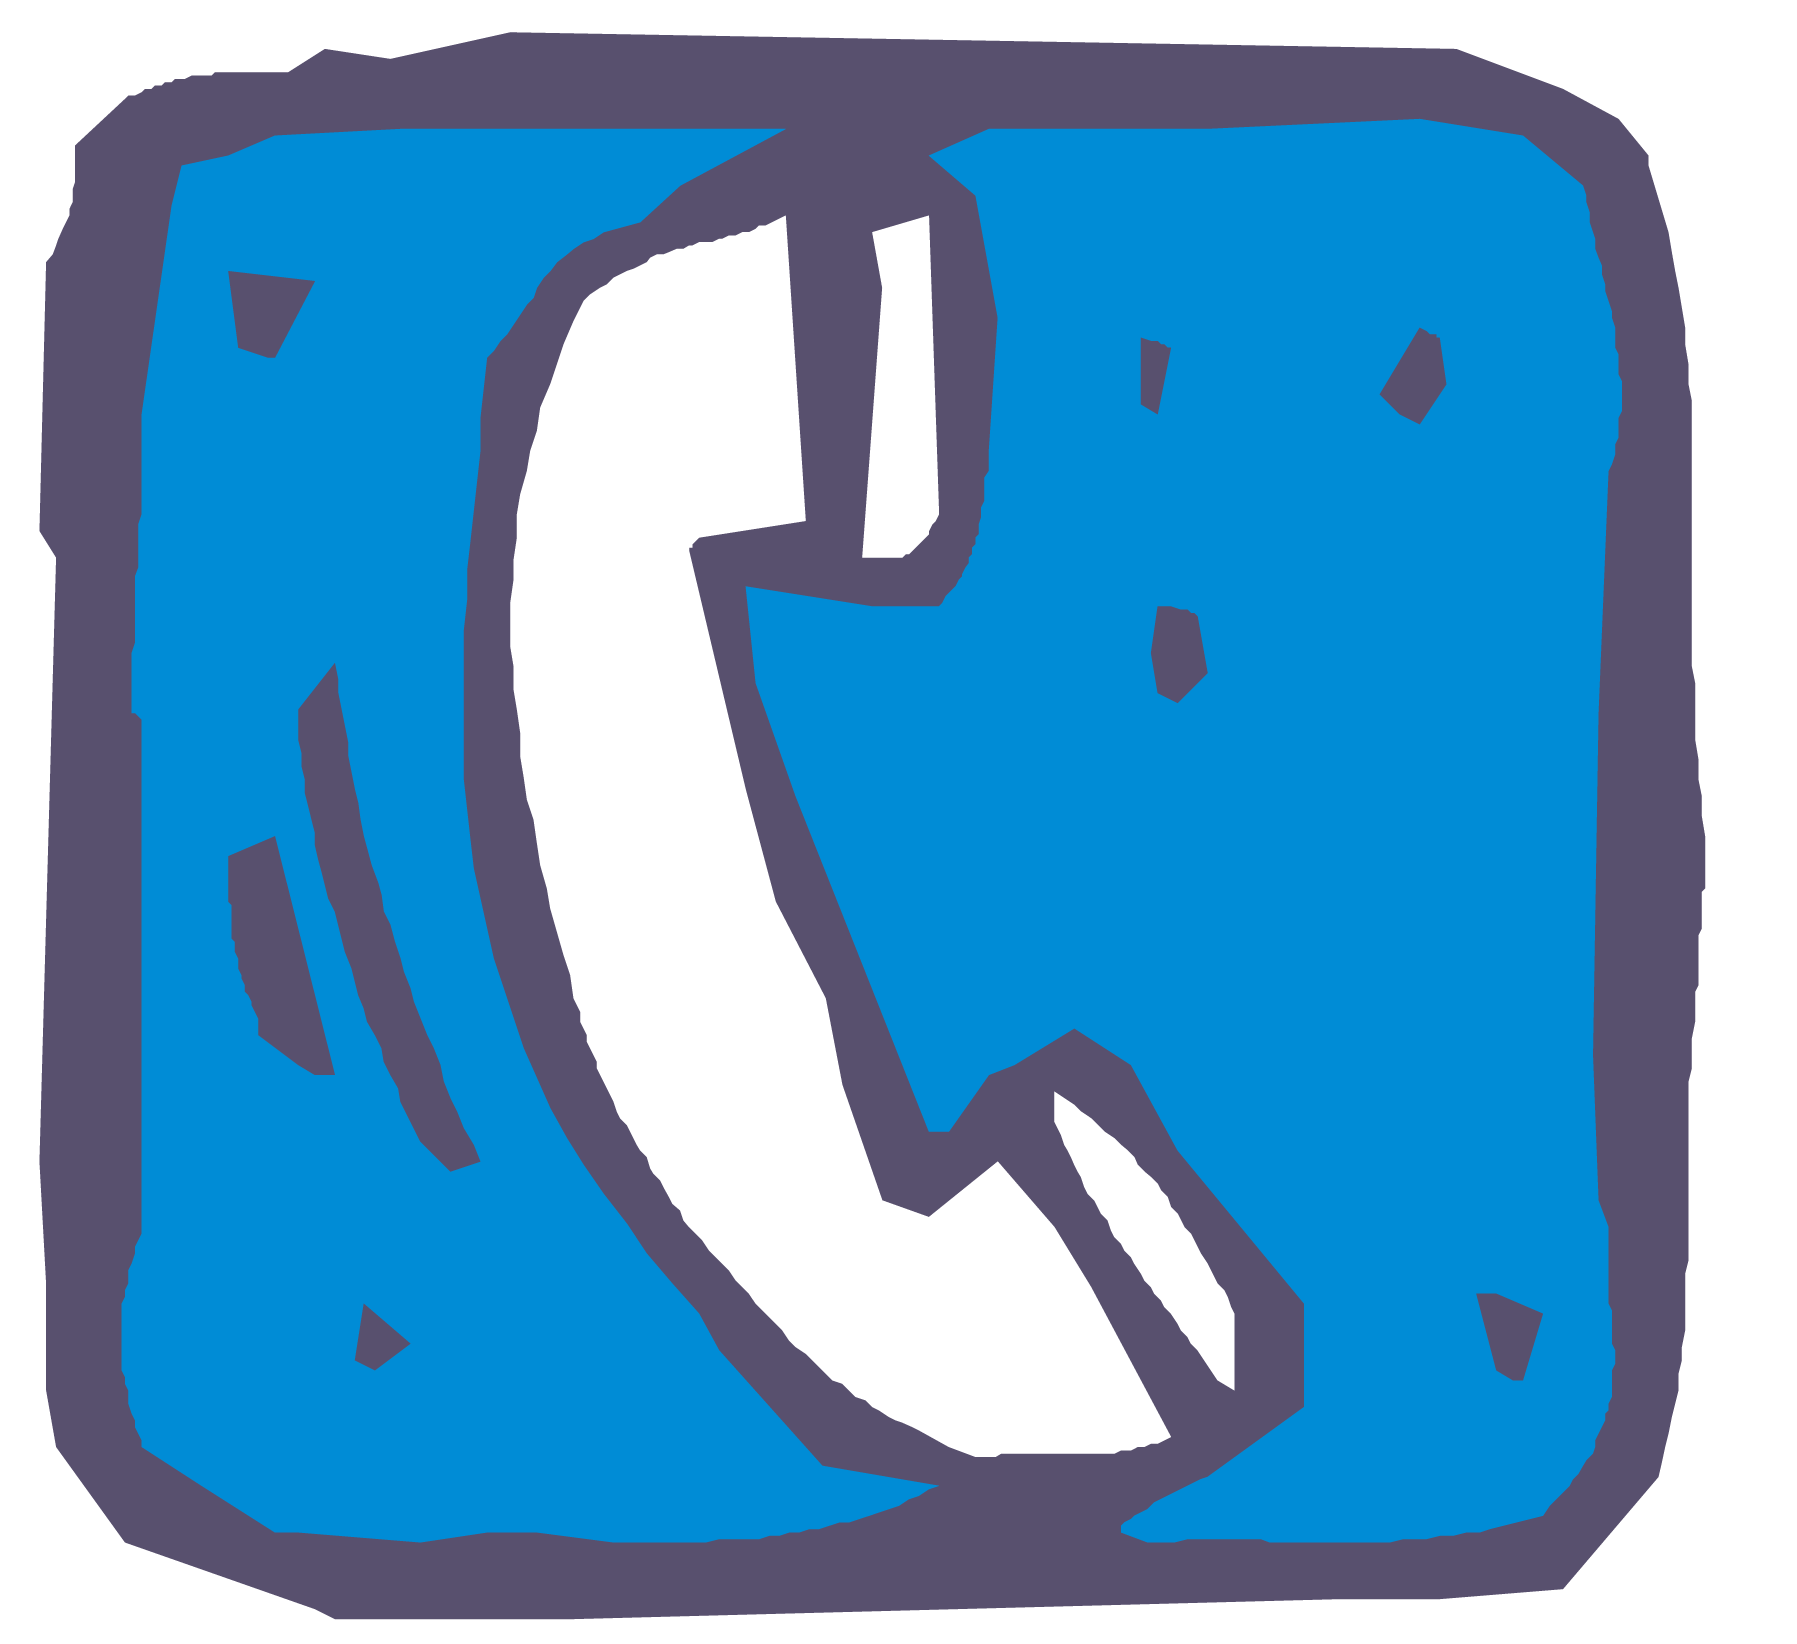 Htc tattoo icons blue. Telephone clipart phone computer